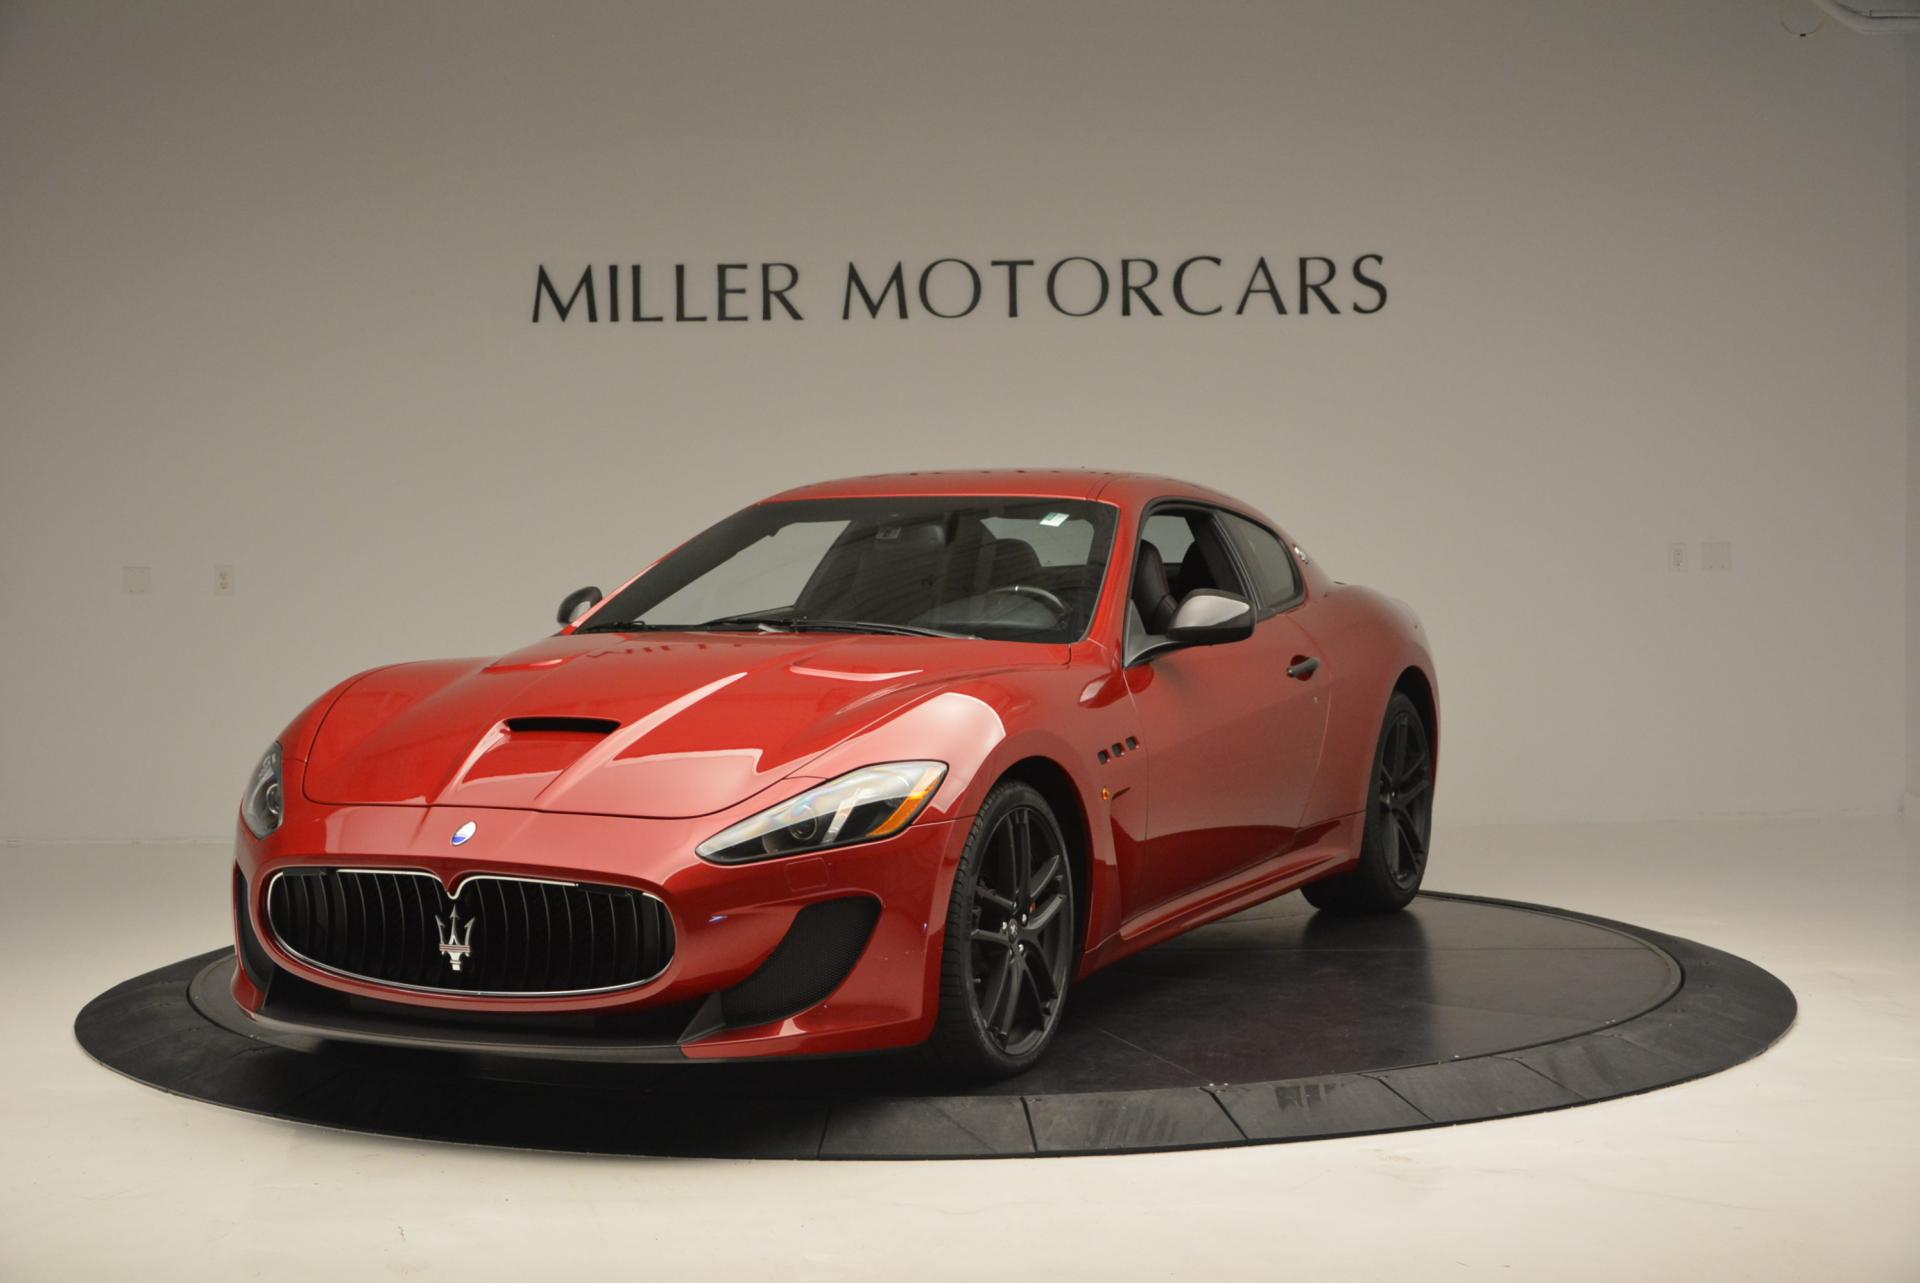 Used 2014 Maserati GranTurismo MC for sale Sold at Maserati of Westport in Westport CT 06880 1